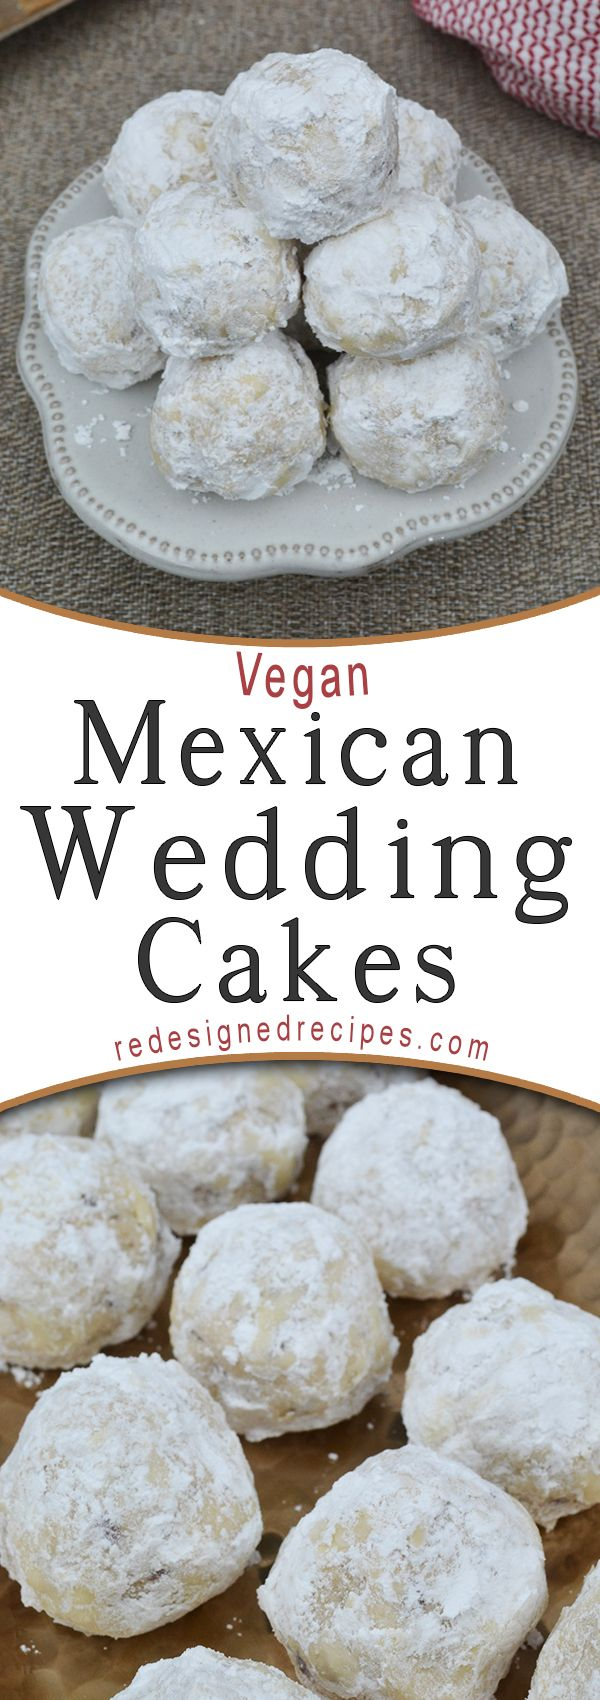 Photo of Vegan Mexican Wedding Cakes – Redesigned Recipes